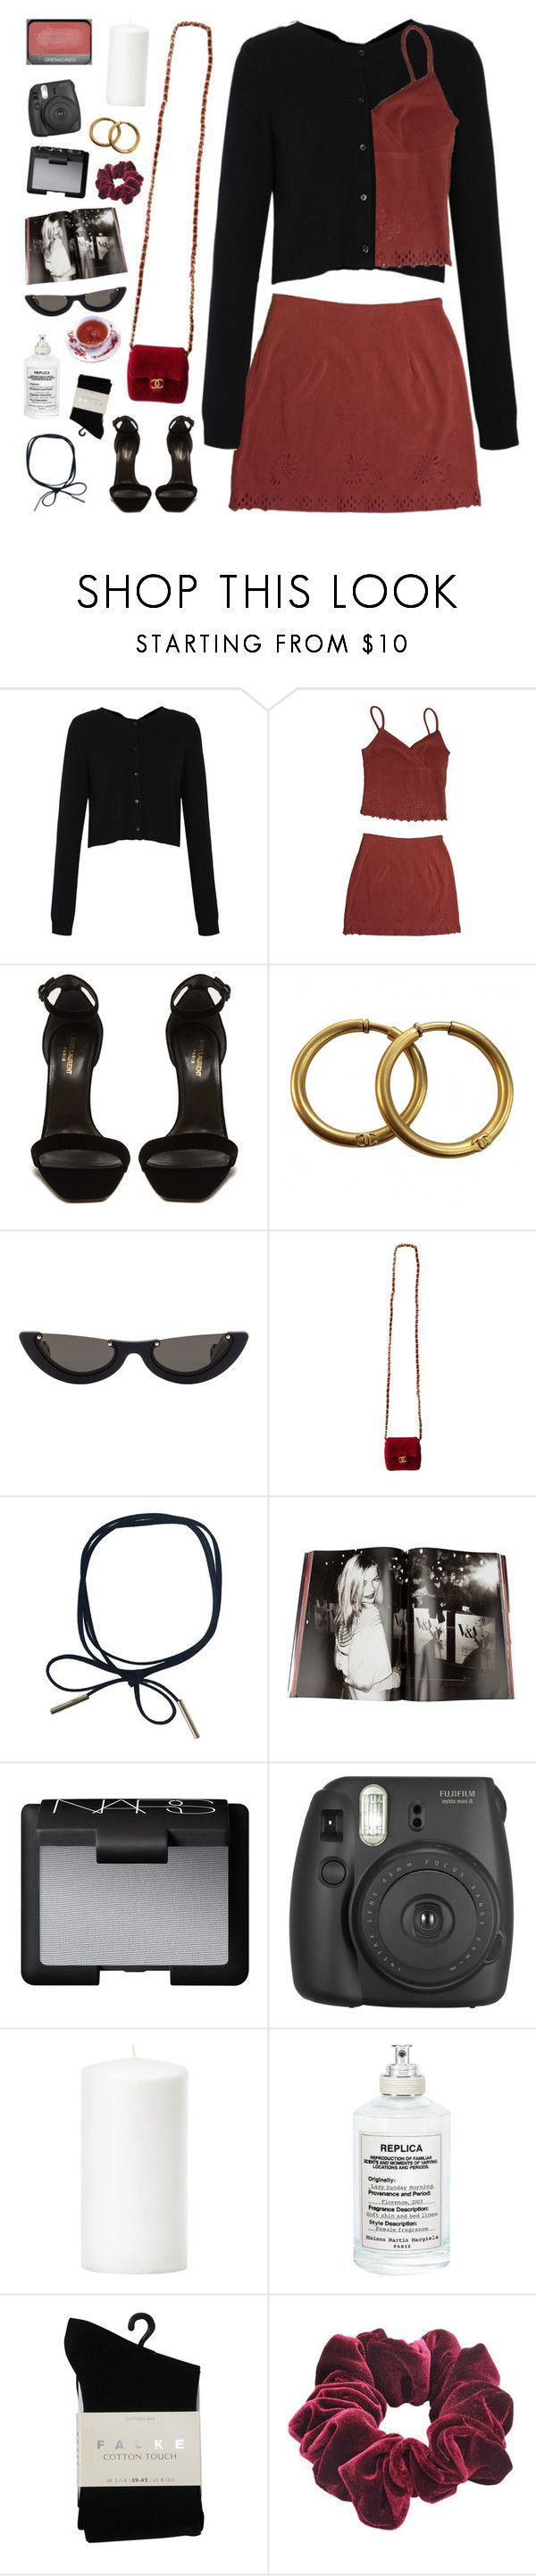 """""""IF ONLY FOR A WHILE"""" by cappvccino ❤ liked on Polyvore featuring Dorothee Schumacher, Yves Saint Laurent, Chanel, PAWAKA, Taschen, NARS Cosmetics, Fujifilm, Maison Margiela, Falke and Wild Pair"""